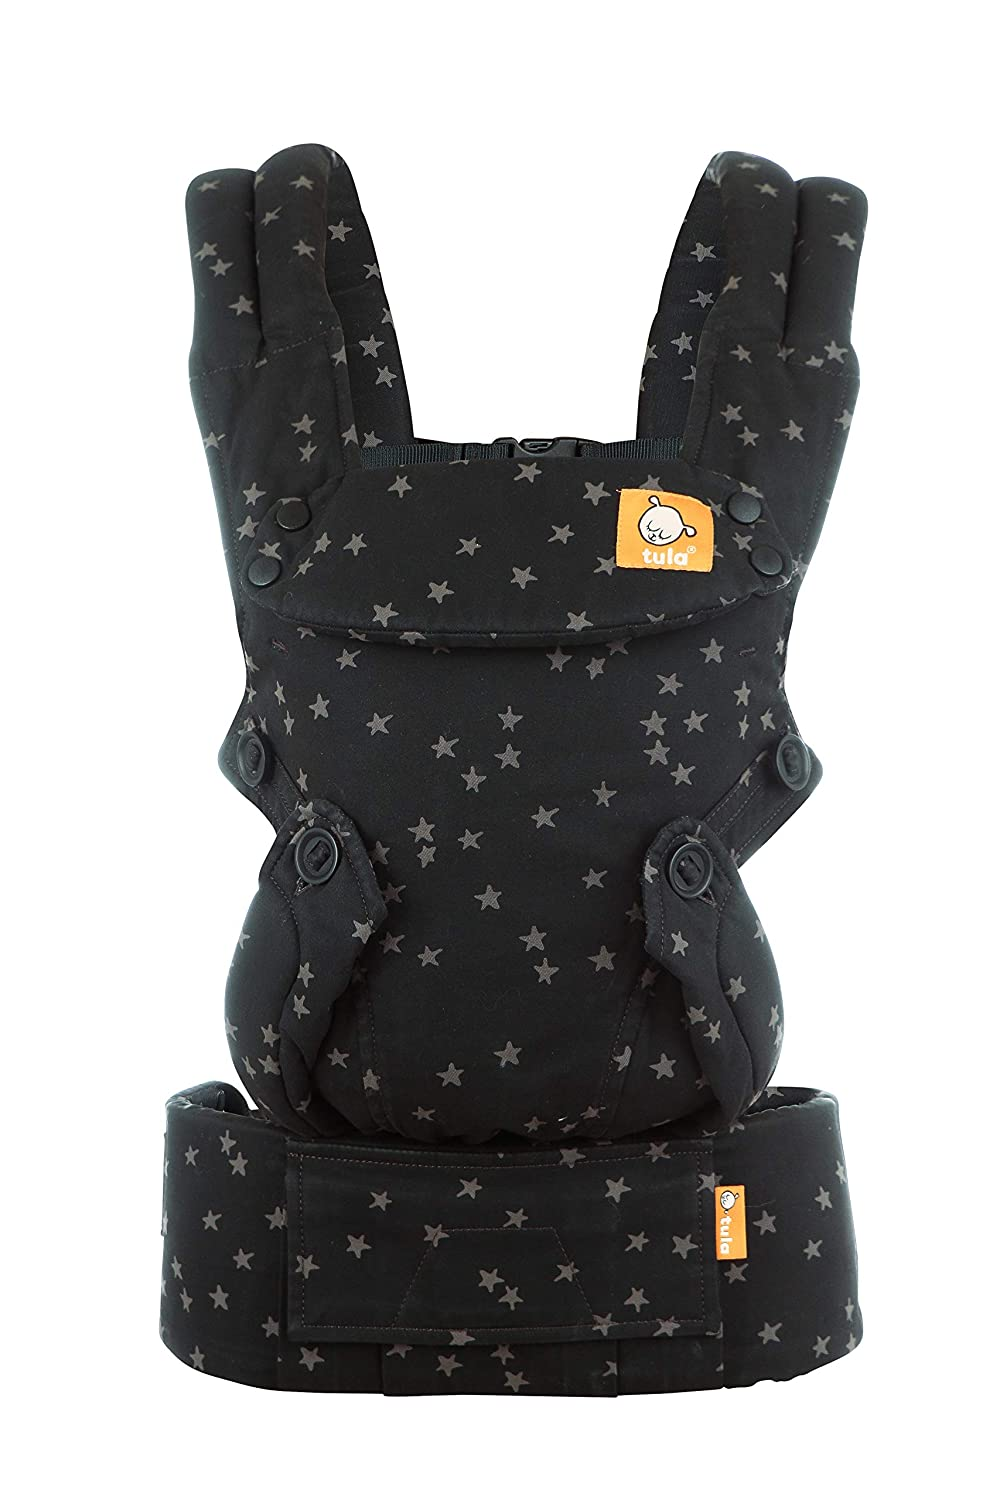 Top 10 Best Baby Carrier For 1 Year Old Review in 2020 4